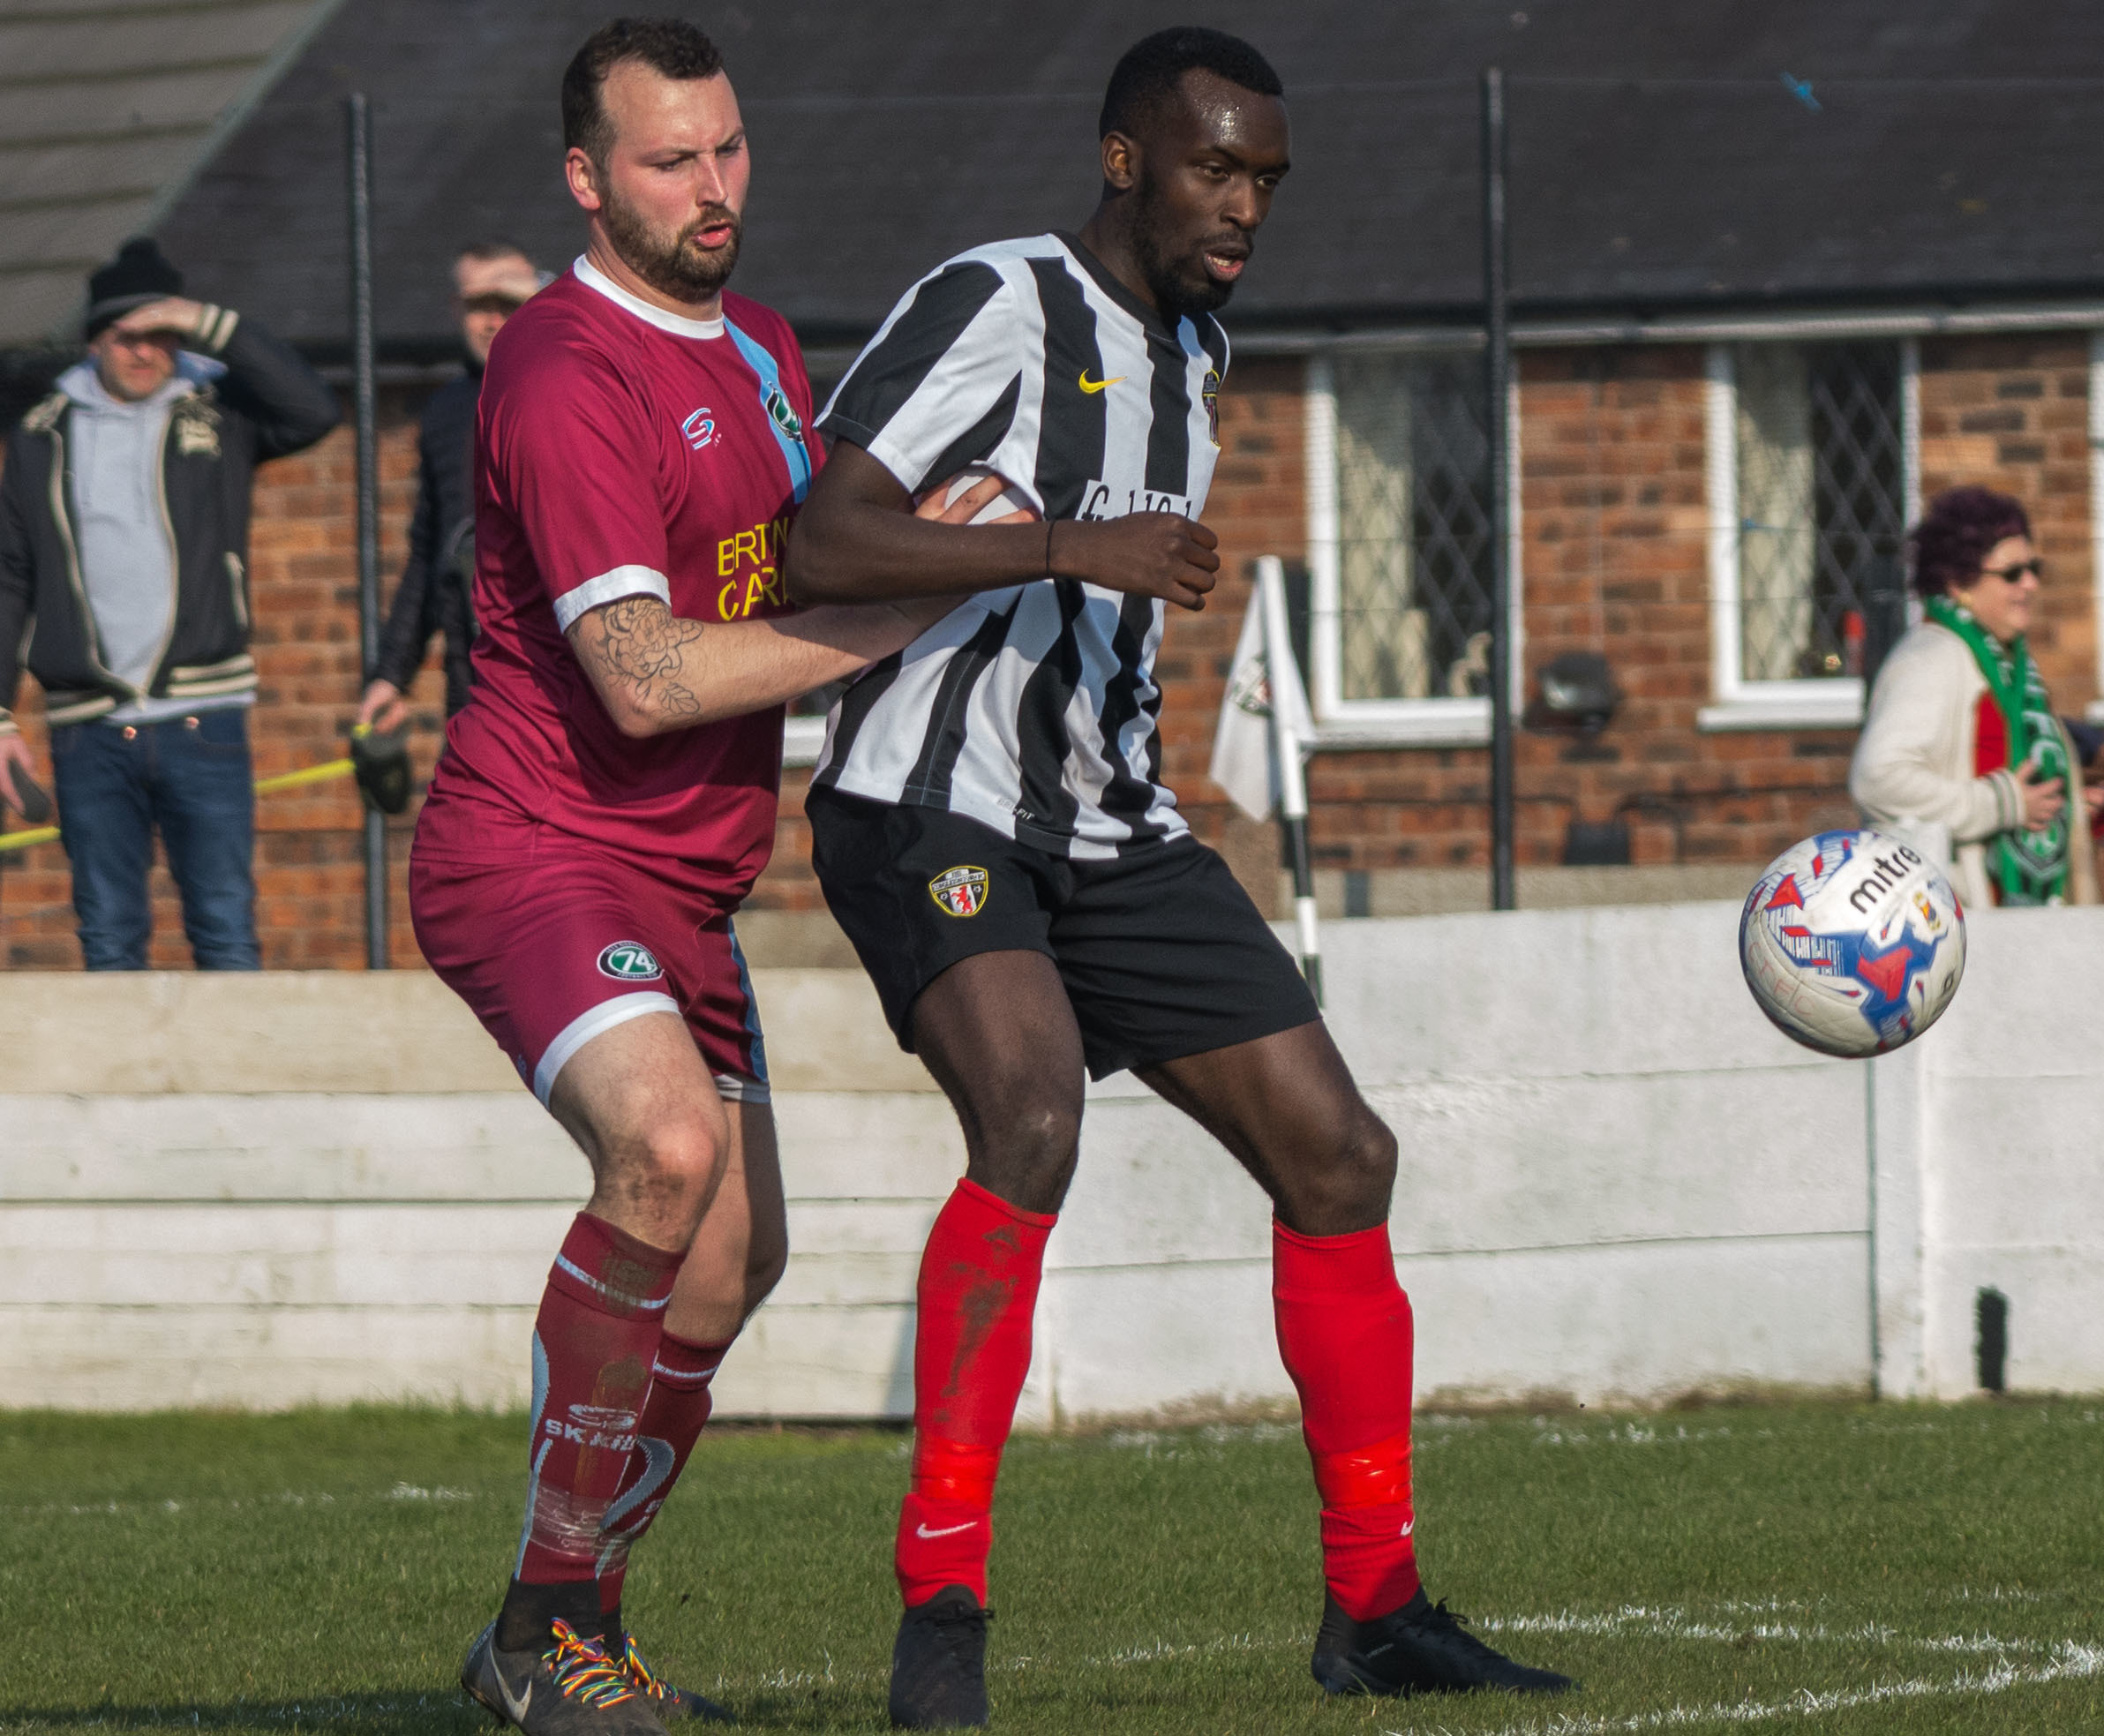 Danny Meadowcroft, left, and the rest of 1874 Northwich's defence kept out Congleton Town's Emini Adegbenro during last weekend's Macron Cup semi-final first leg at Booth Street. Picture: Ian Dutton